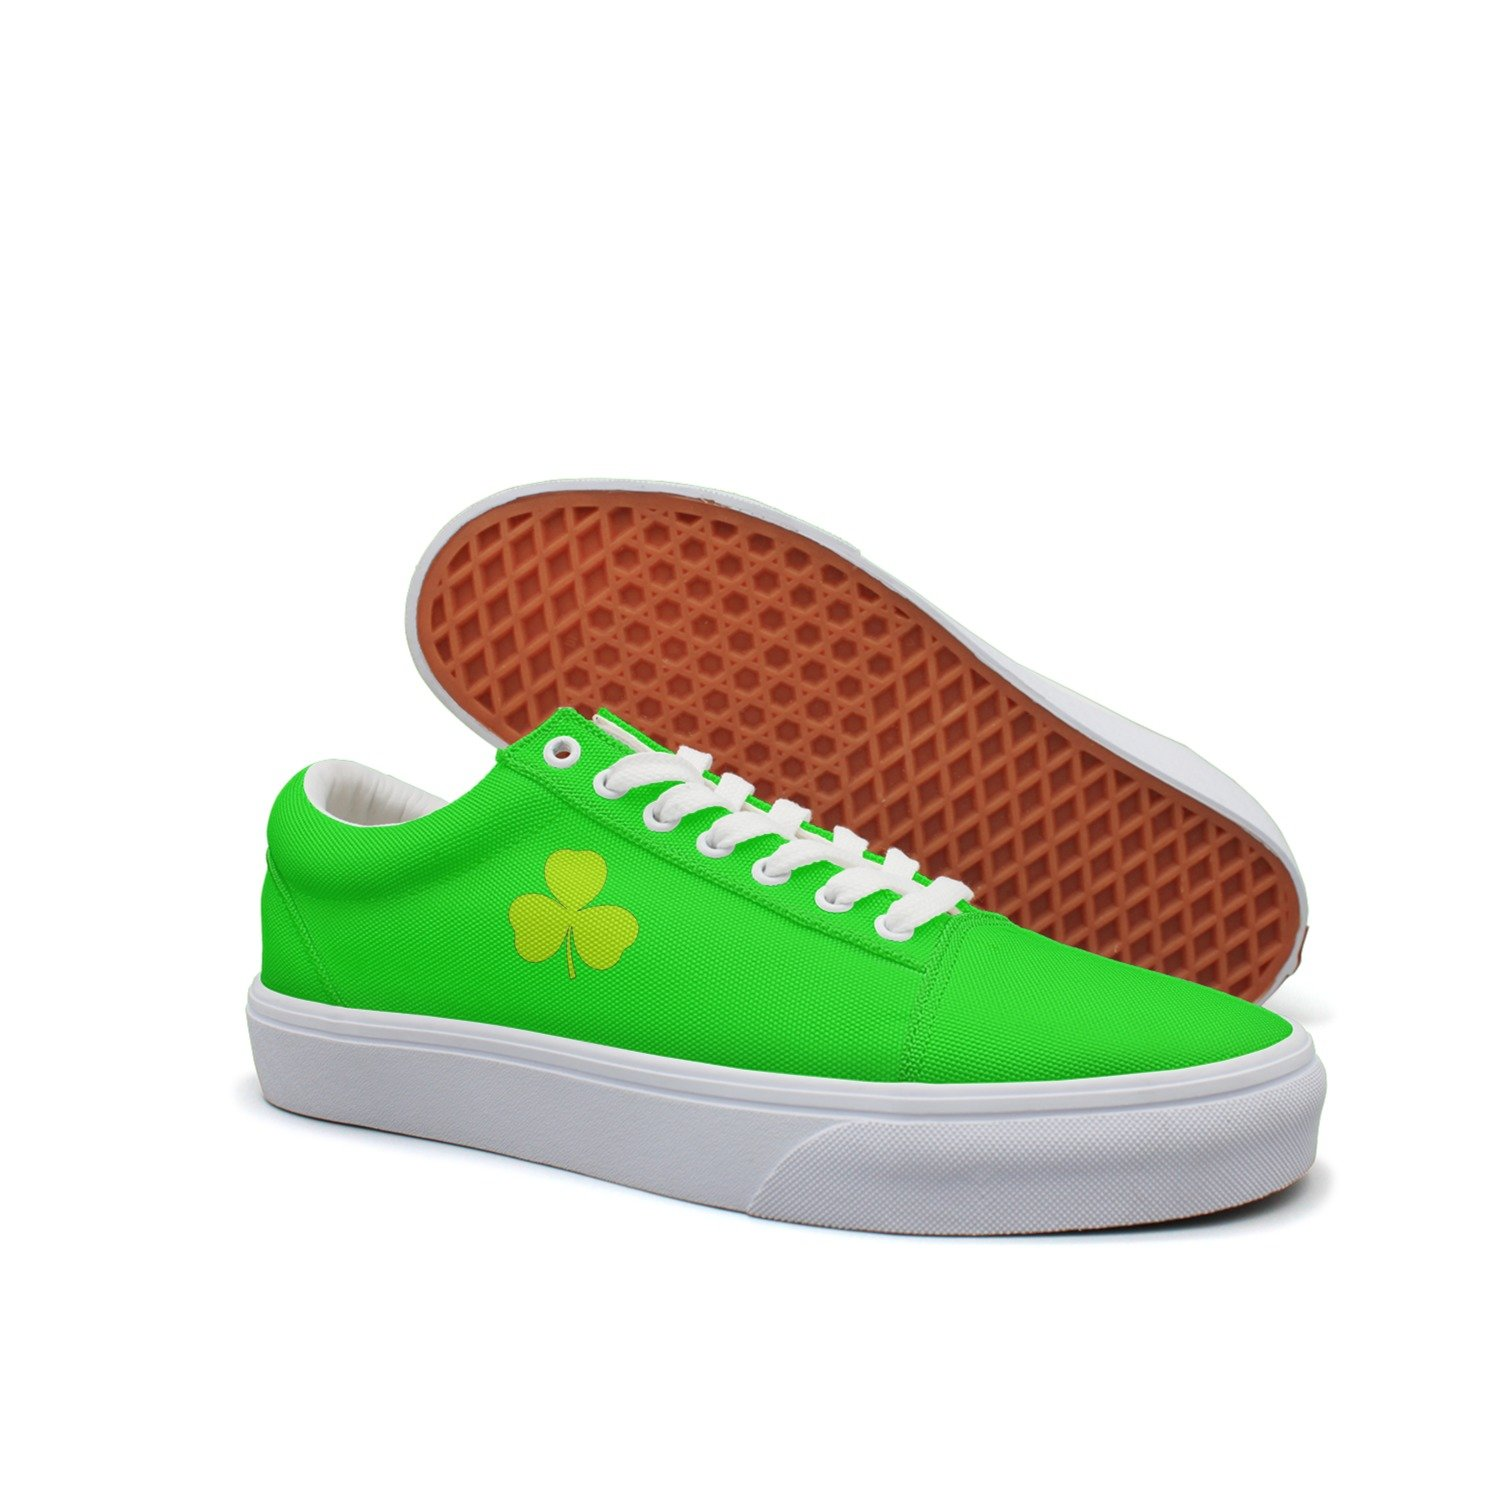 Patricks Day Mens Canvas Low Cut Sneakers Casual Shoes St